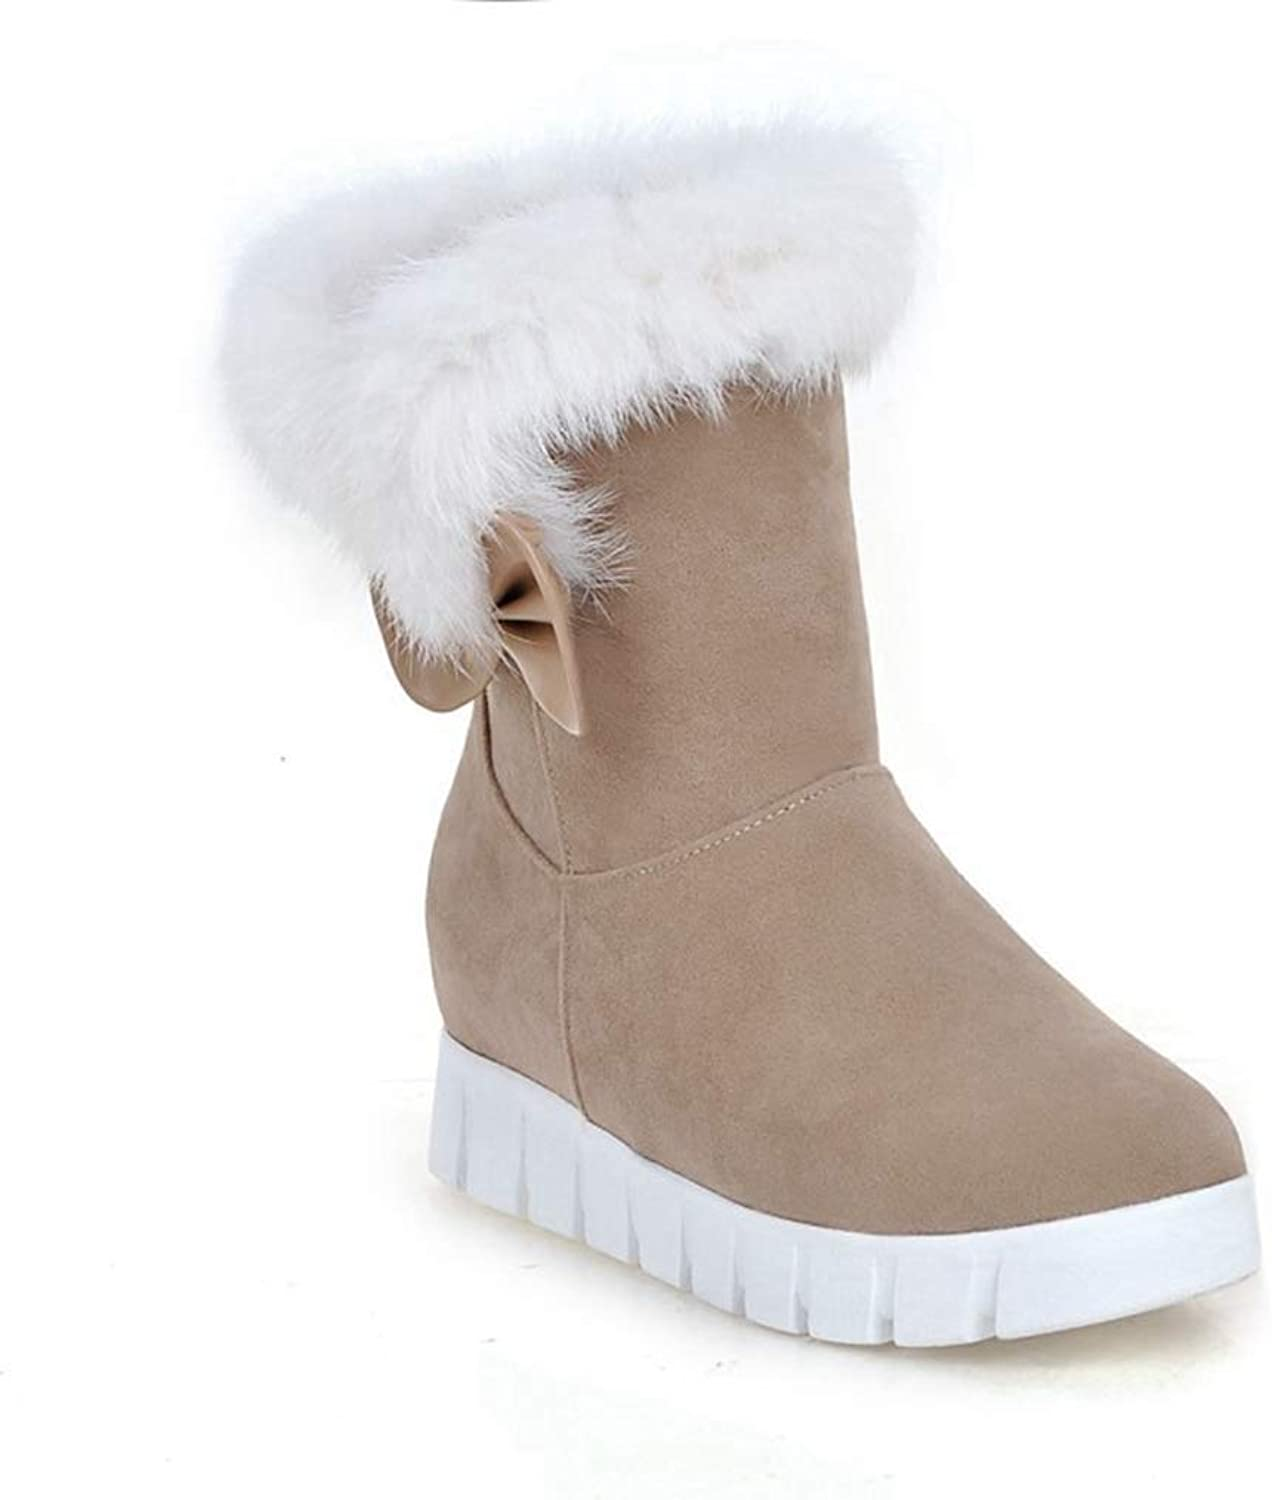 Fashion shoesbox Women's Faux Fur Winter Snow Boots Casual Solid Pull On Mid Calf Mid Heel Platform Warm Antiskid Ankle Booties